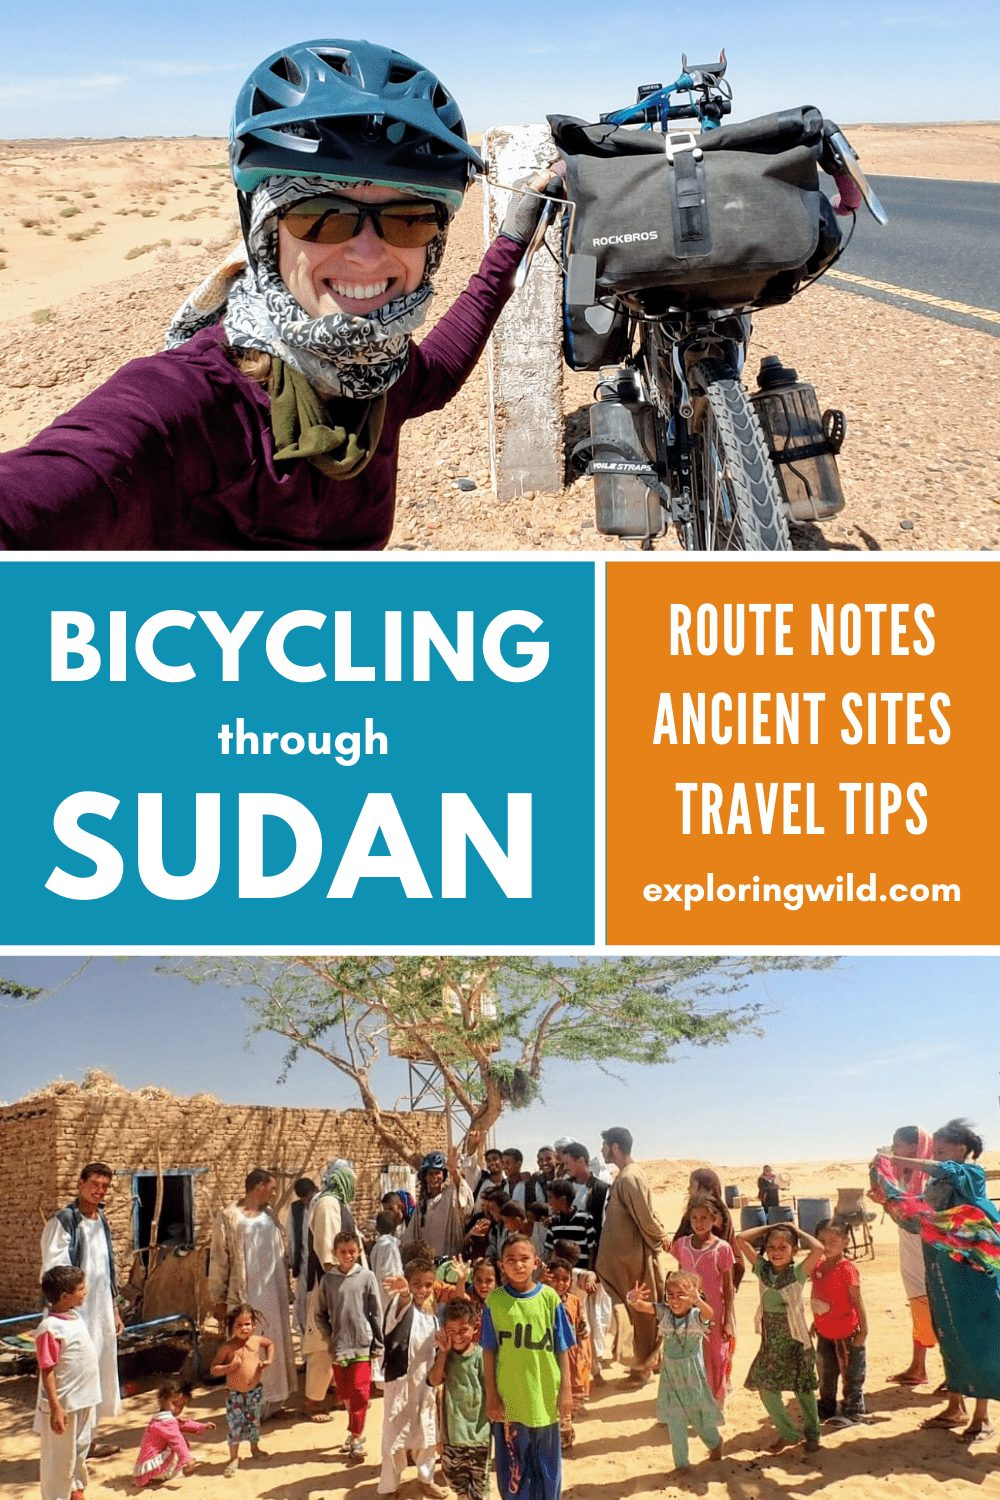 Picture of women cycling in Sudan and Sudanese family, with text: Bicycling Through Sudan